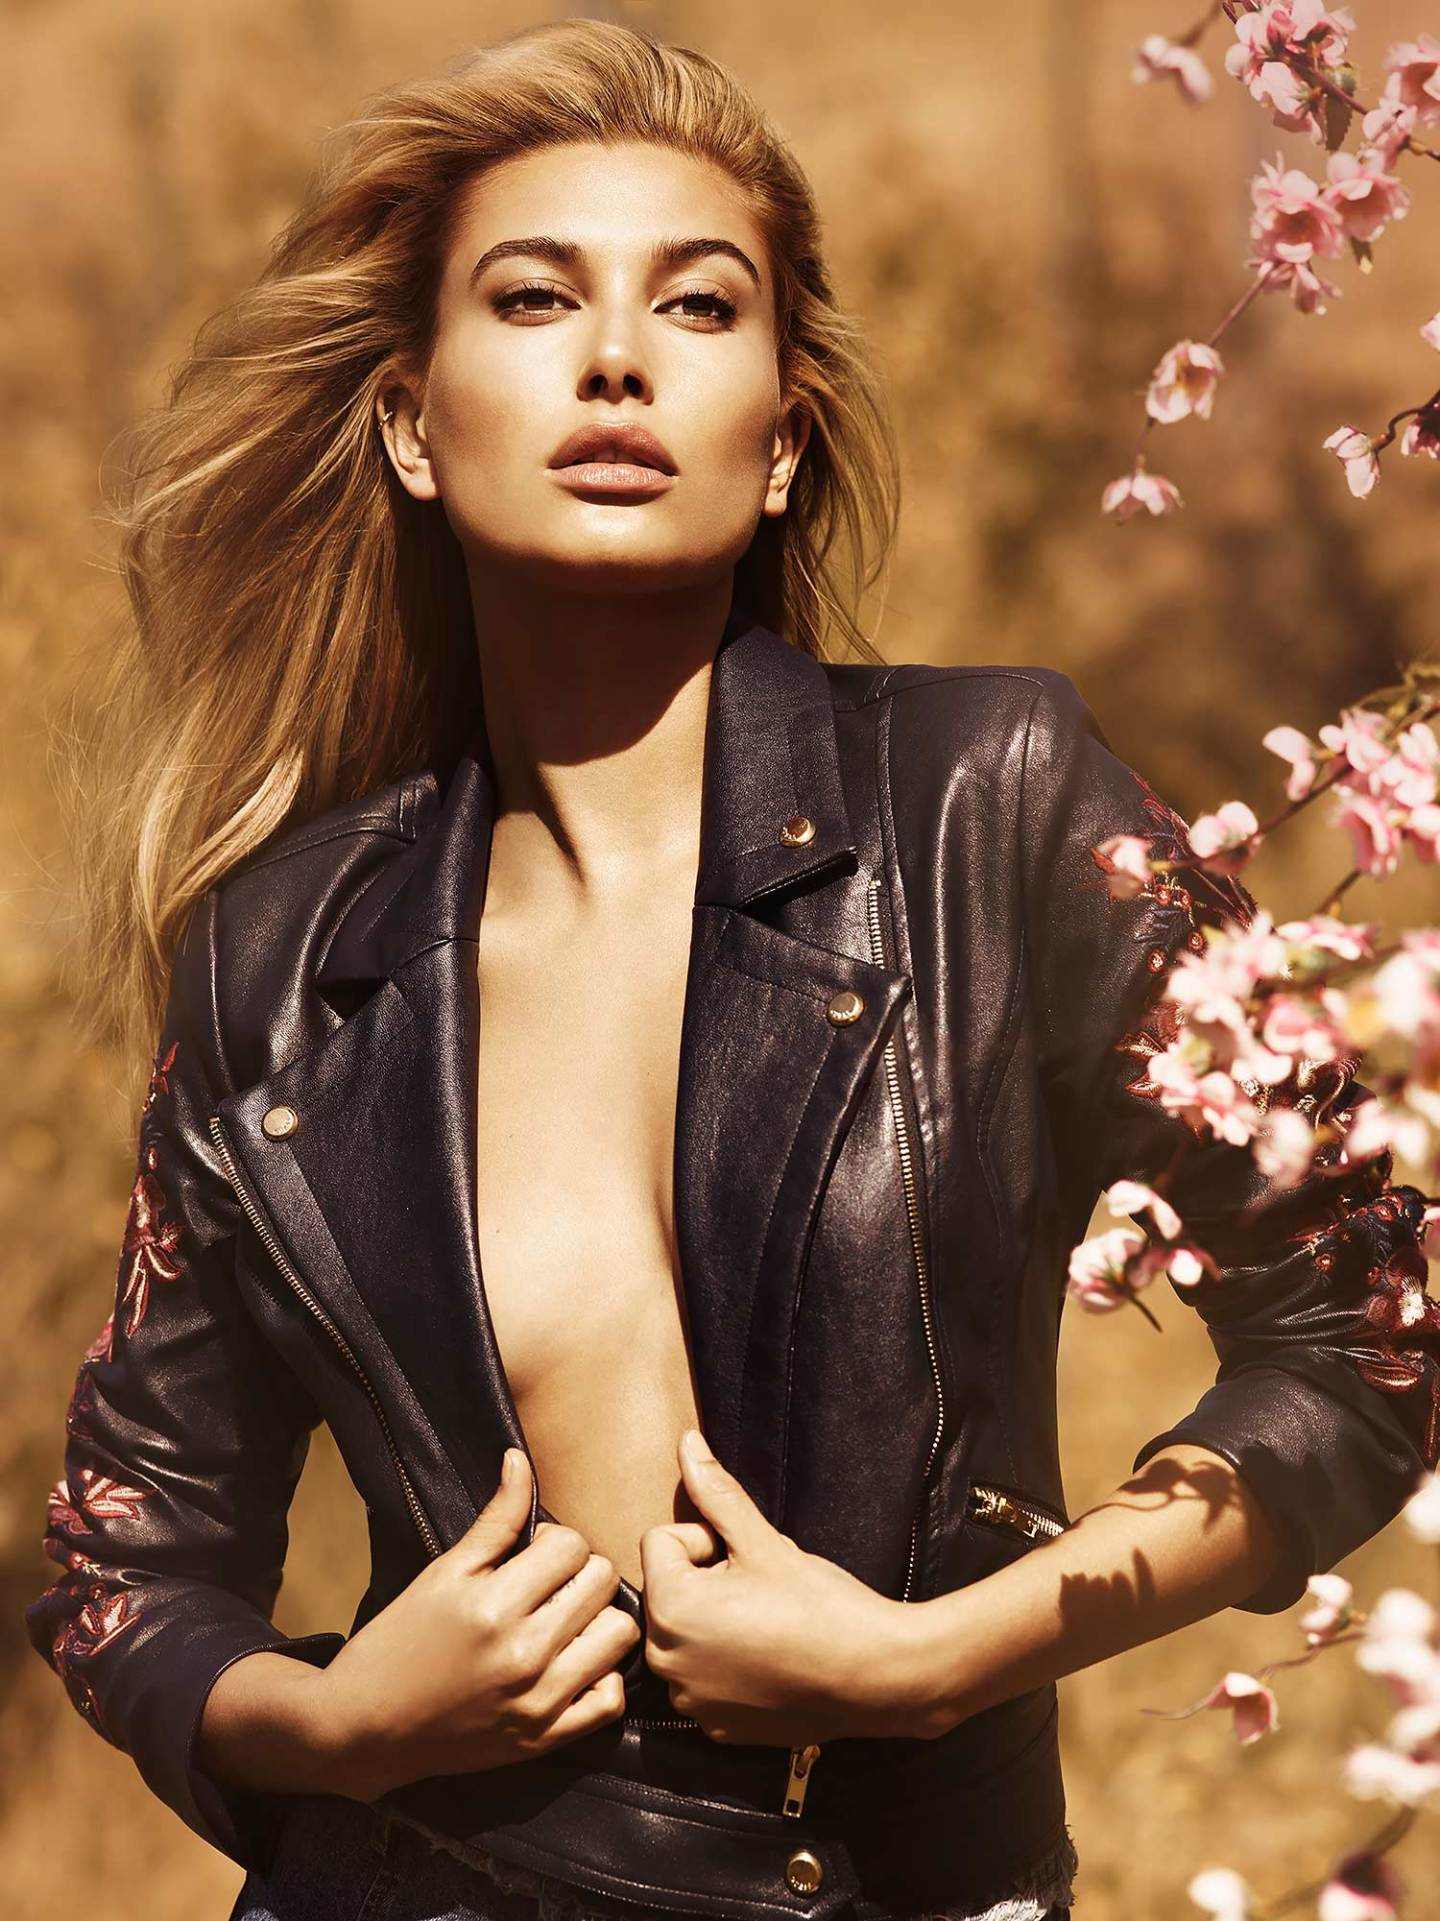 GUESS-Campaign-Hailey-Baldwin_2